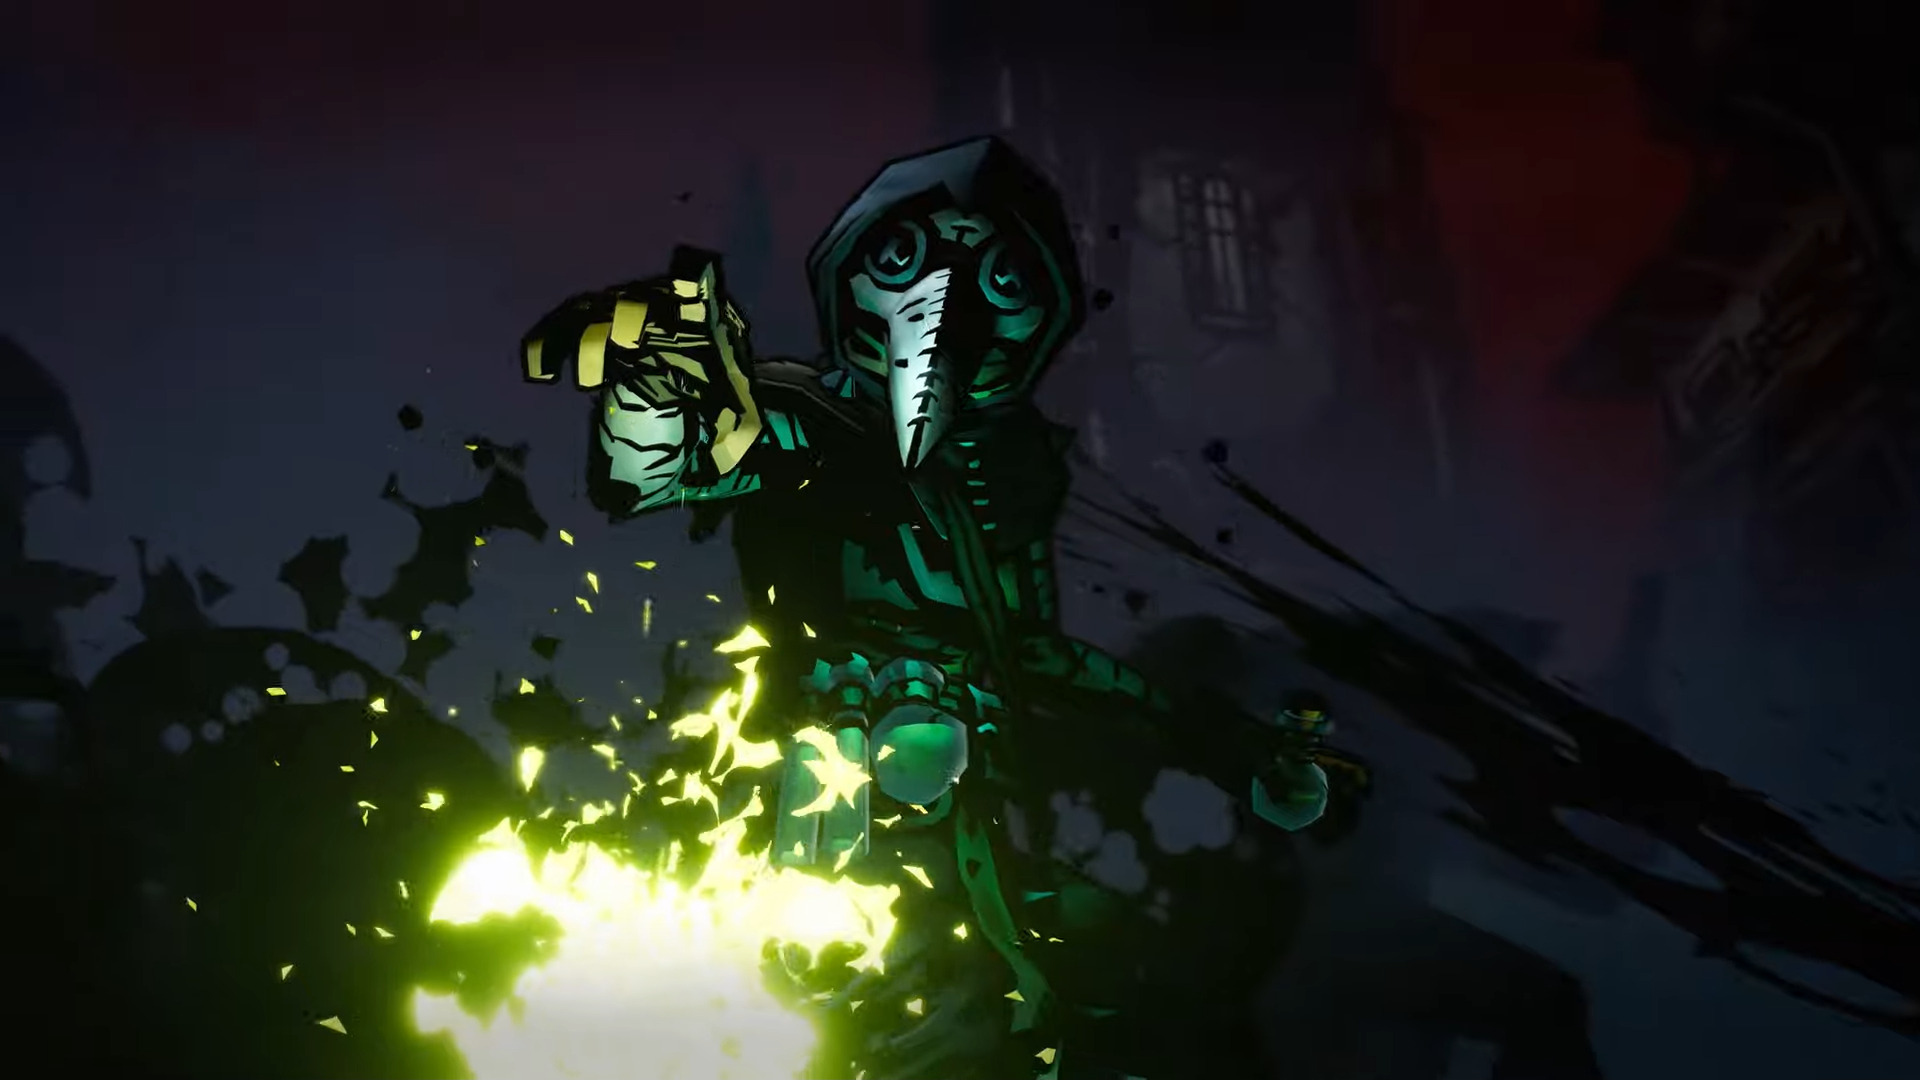 Darkest Dungeon 2 Hits Early Access Next Year, Will Be An Epic Games Store Exclusive At Launch